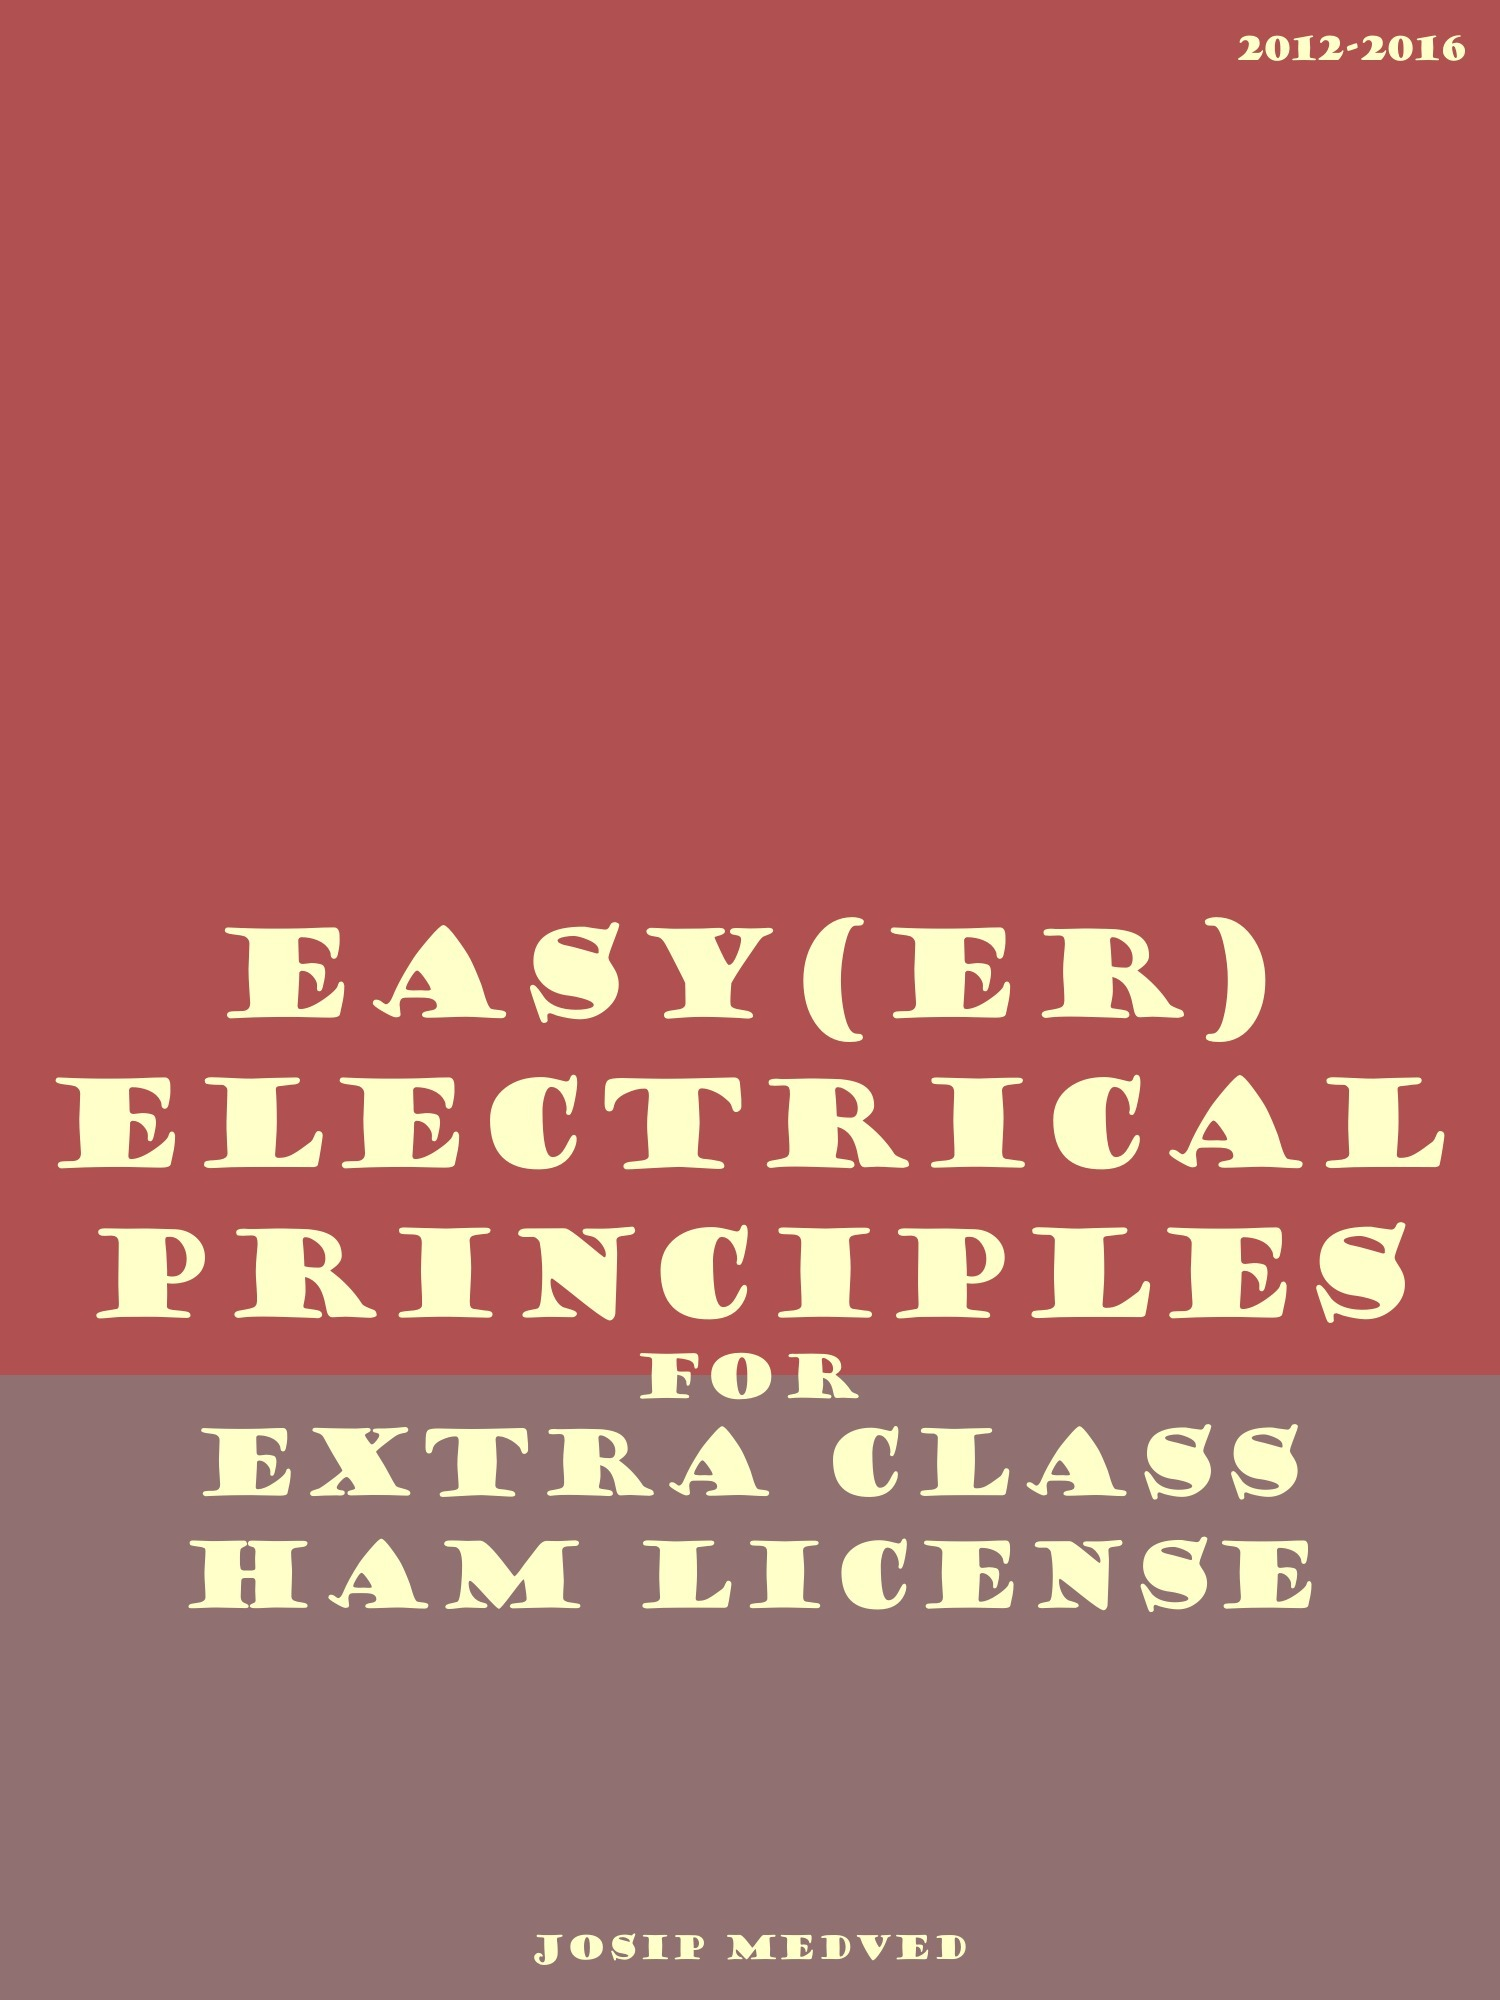 Easy(er) Electrical Principles for Extra Class Ham License Josip Medved